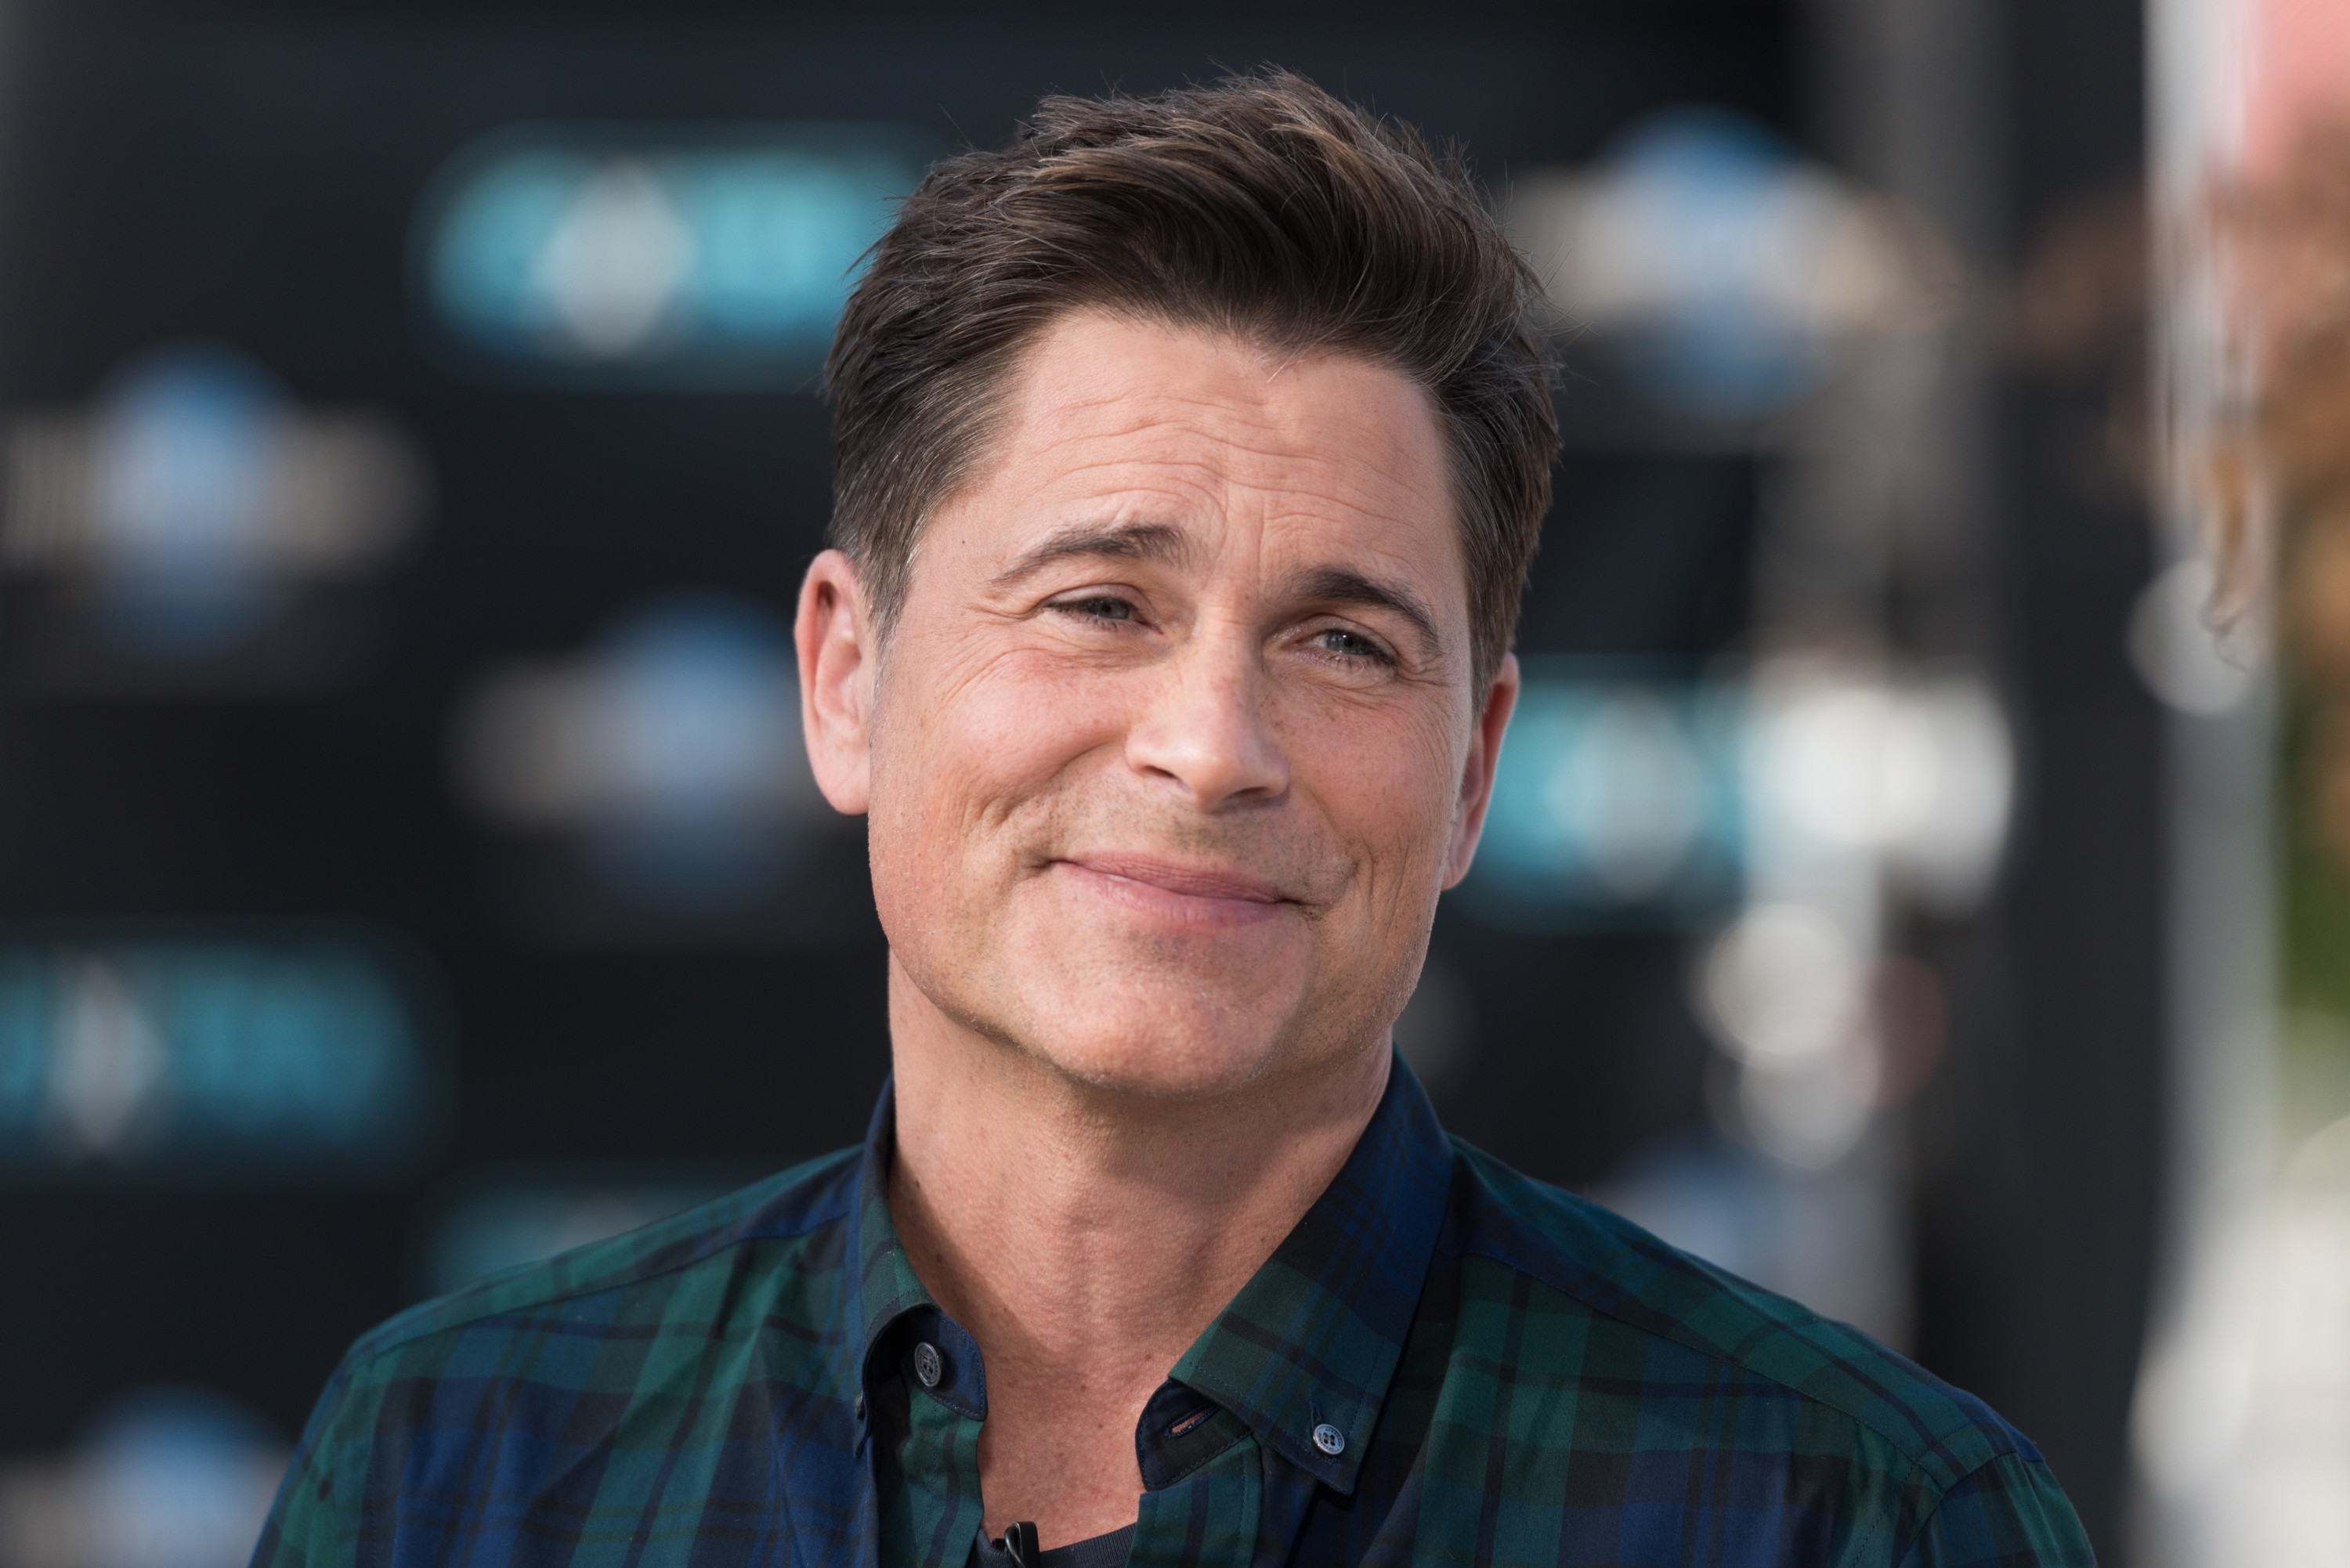 """UNIVERSAL CITY, CA - FEBRUARY 06:  Rob Lowe visits """"Extra"""" at Universal Studios Hollywood on February 6, 2018 in Universal City, California.  (Photo by Noel Vasquez/Getty Images)"""